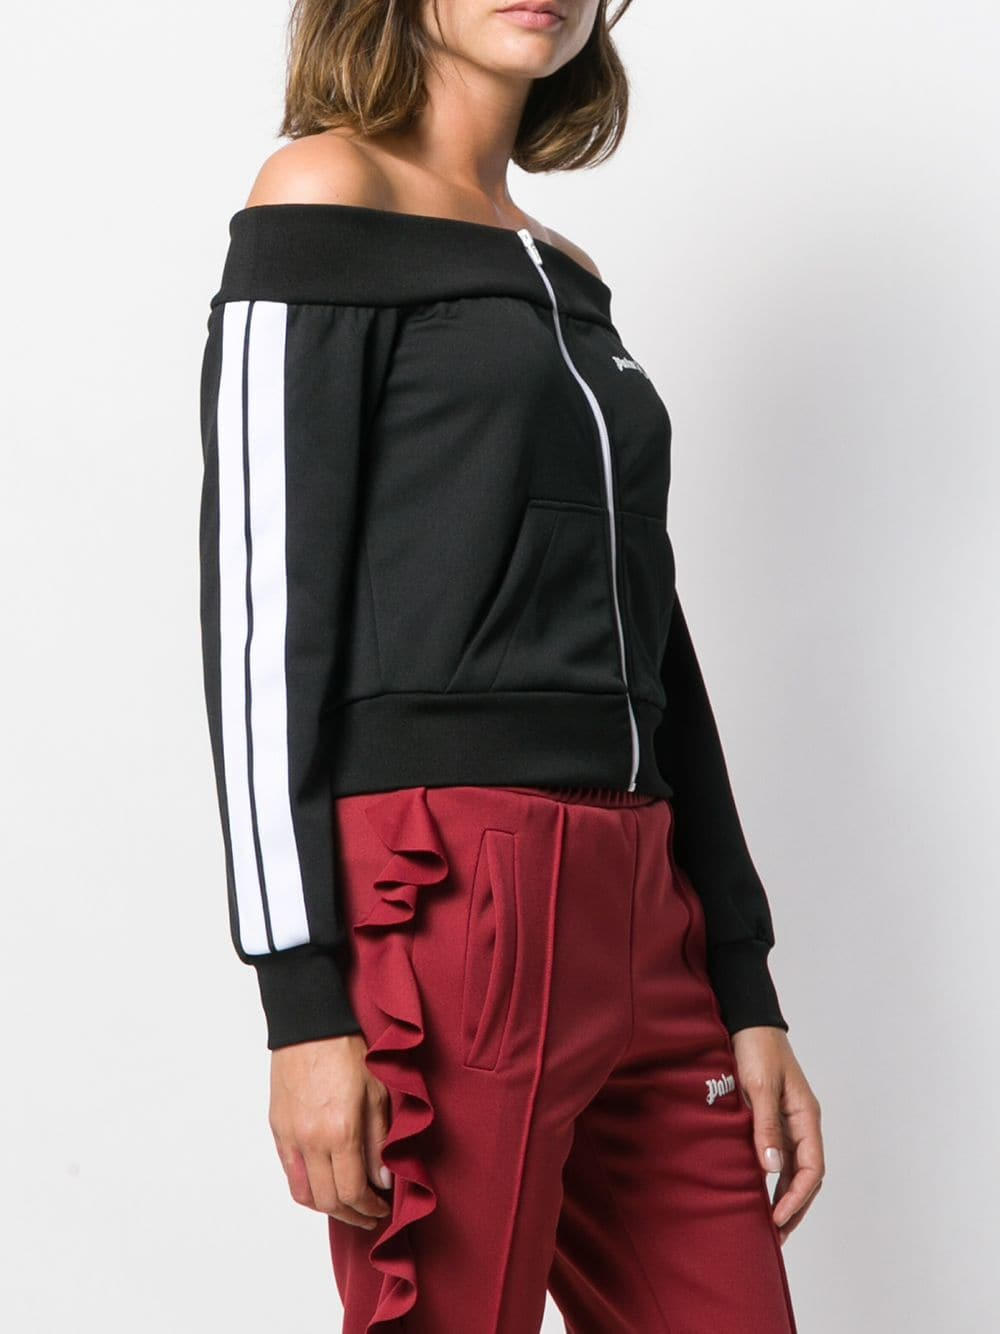 PALM ANGELS WOMEN OFF SHOULDERS TRACK JACKET